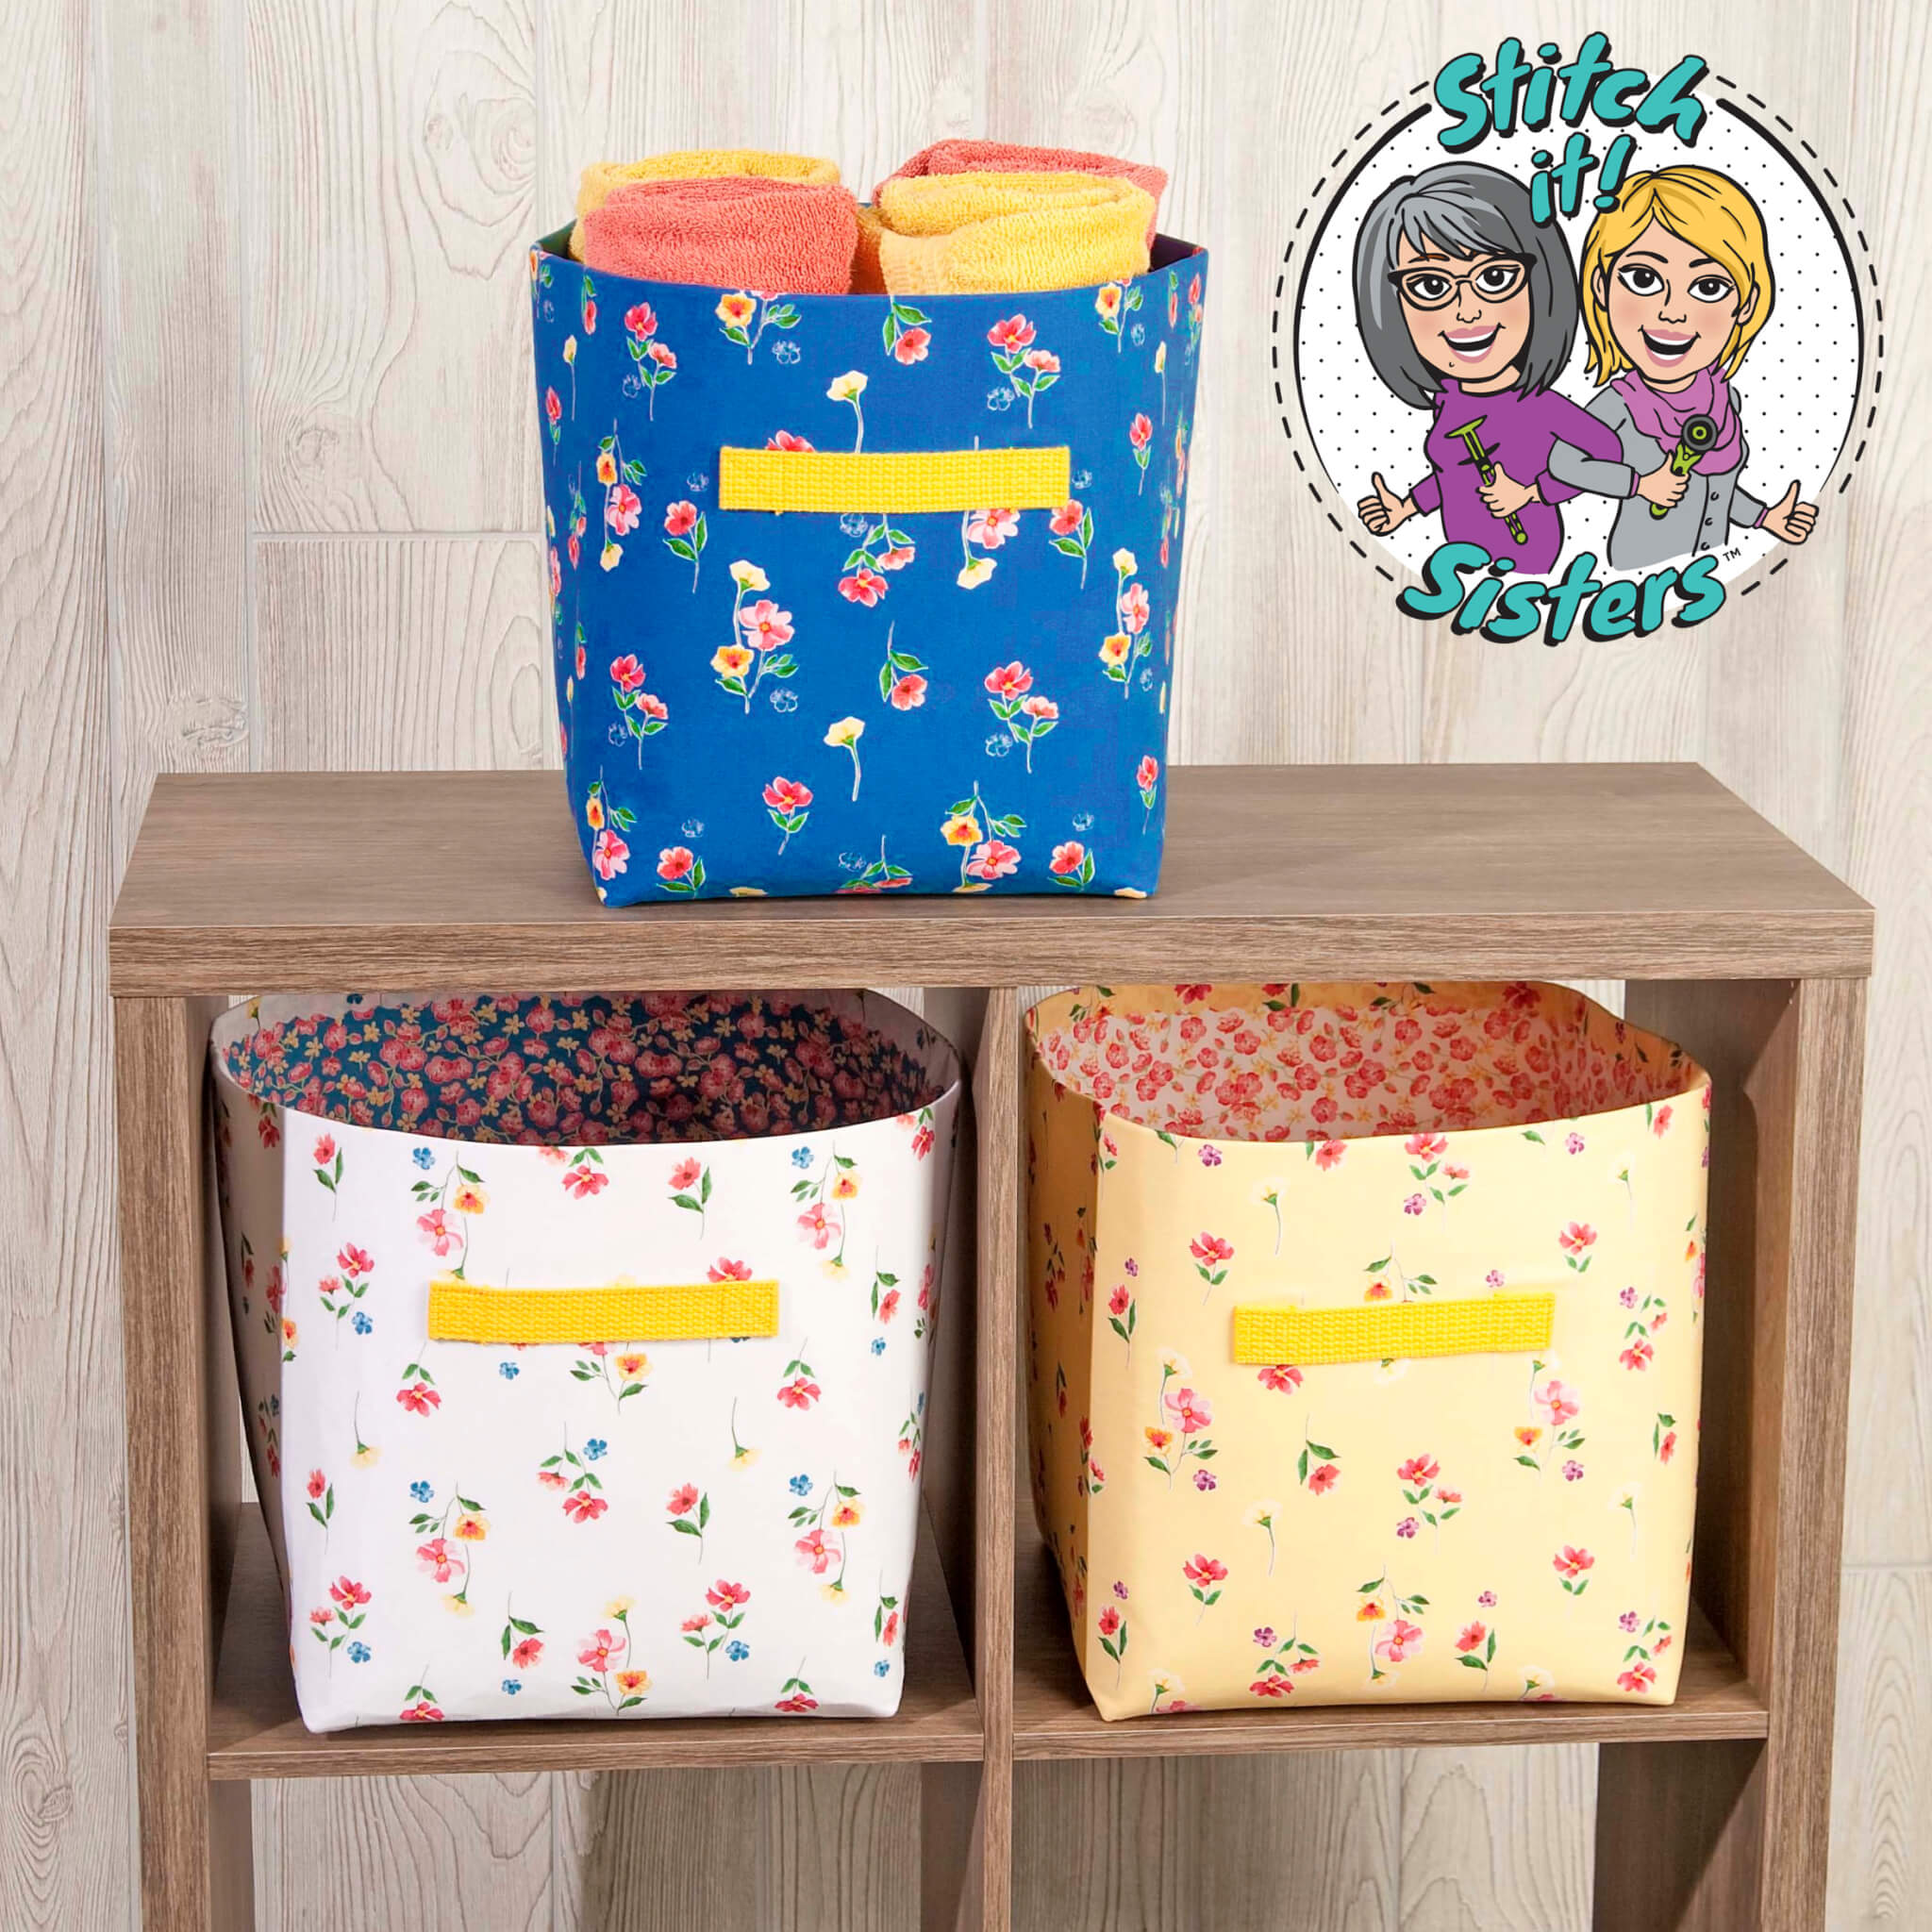 NEW! Stitch it! Sisters Sew Organized Fabric Bins Sewing Tutorial at the Nancy Zieman Productions Blog